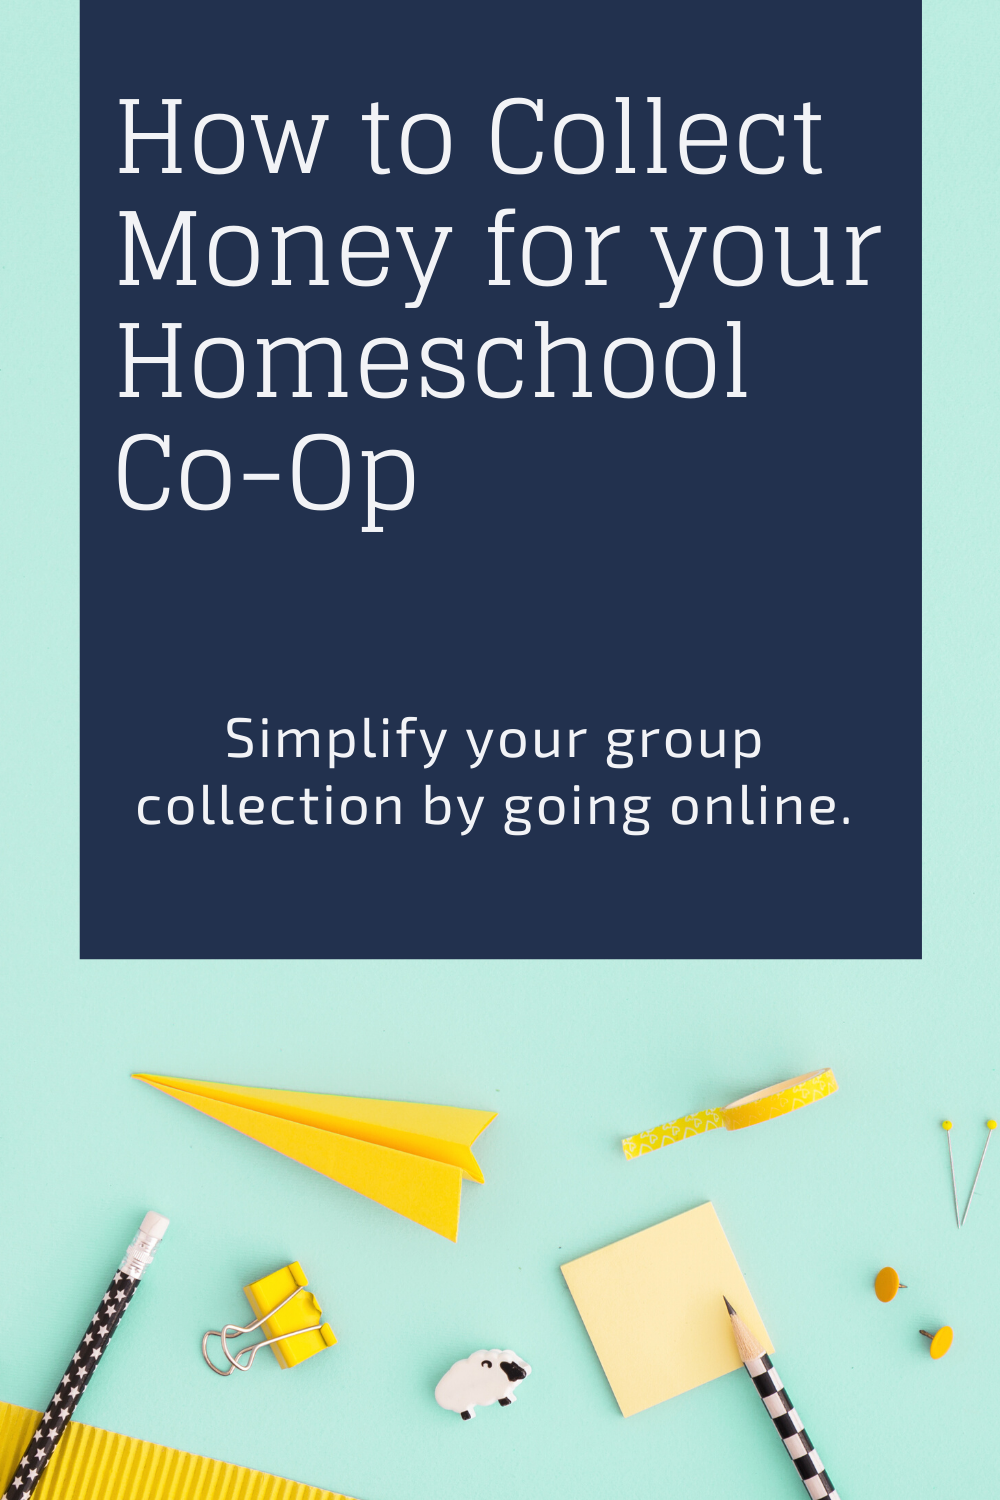 Quickly create an online shop with no set up fee for your homeschool co-op.